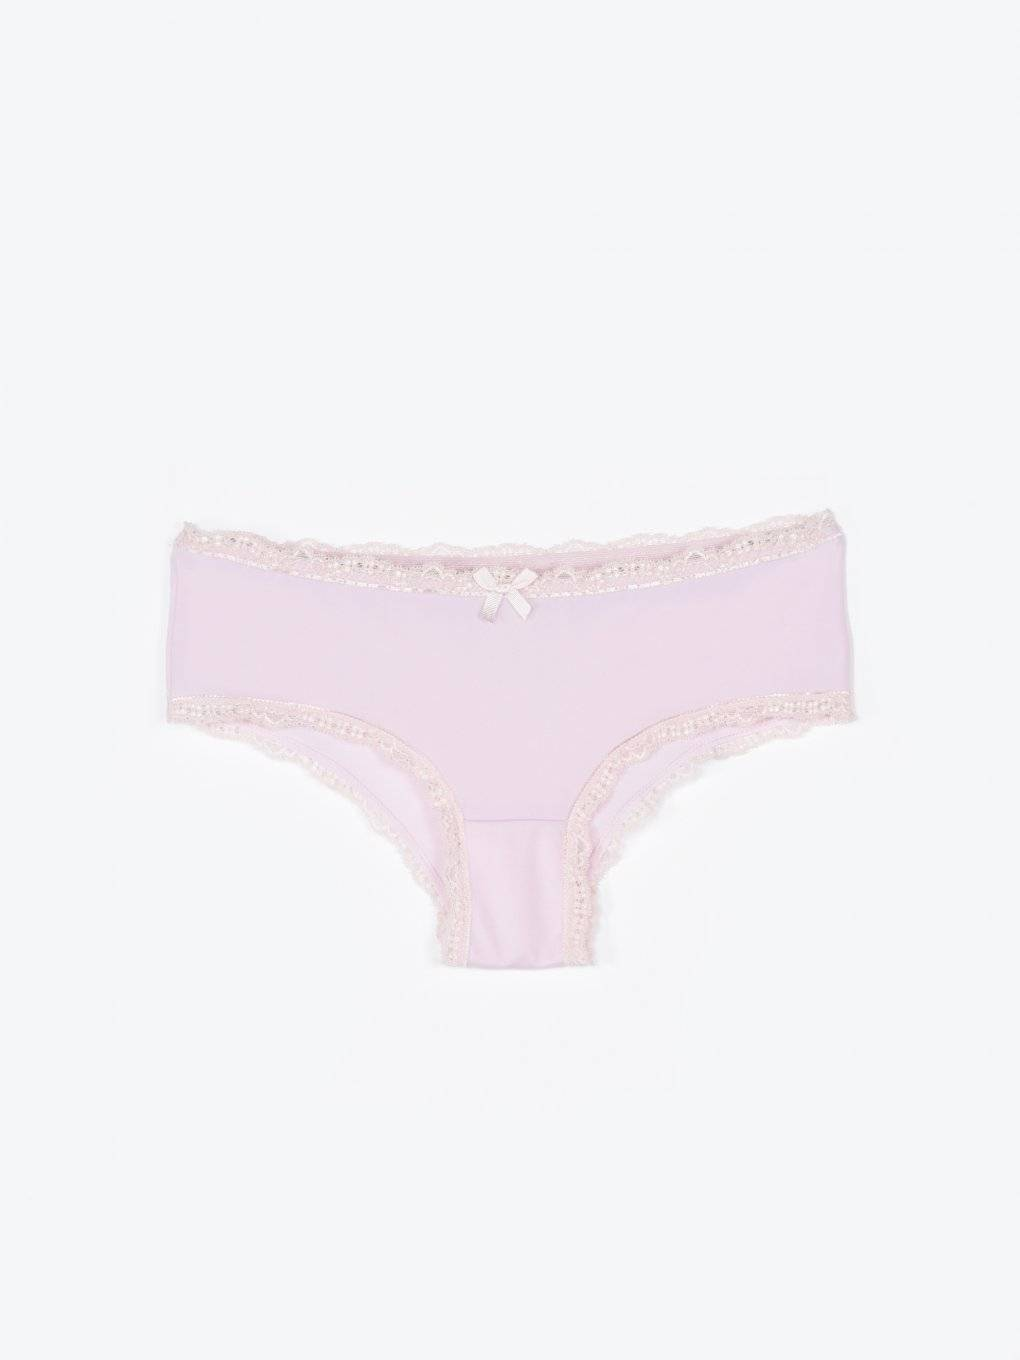 Panties with lace trim